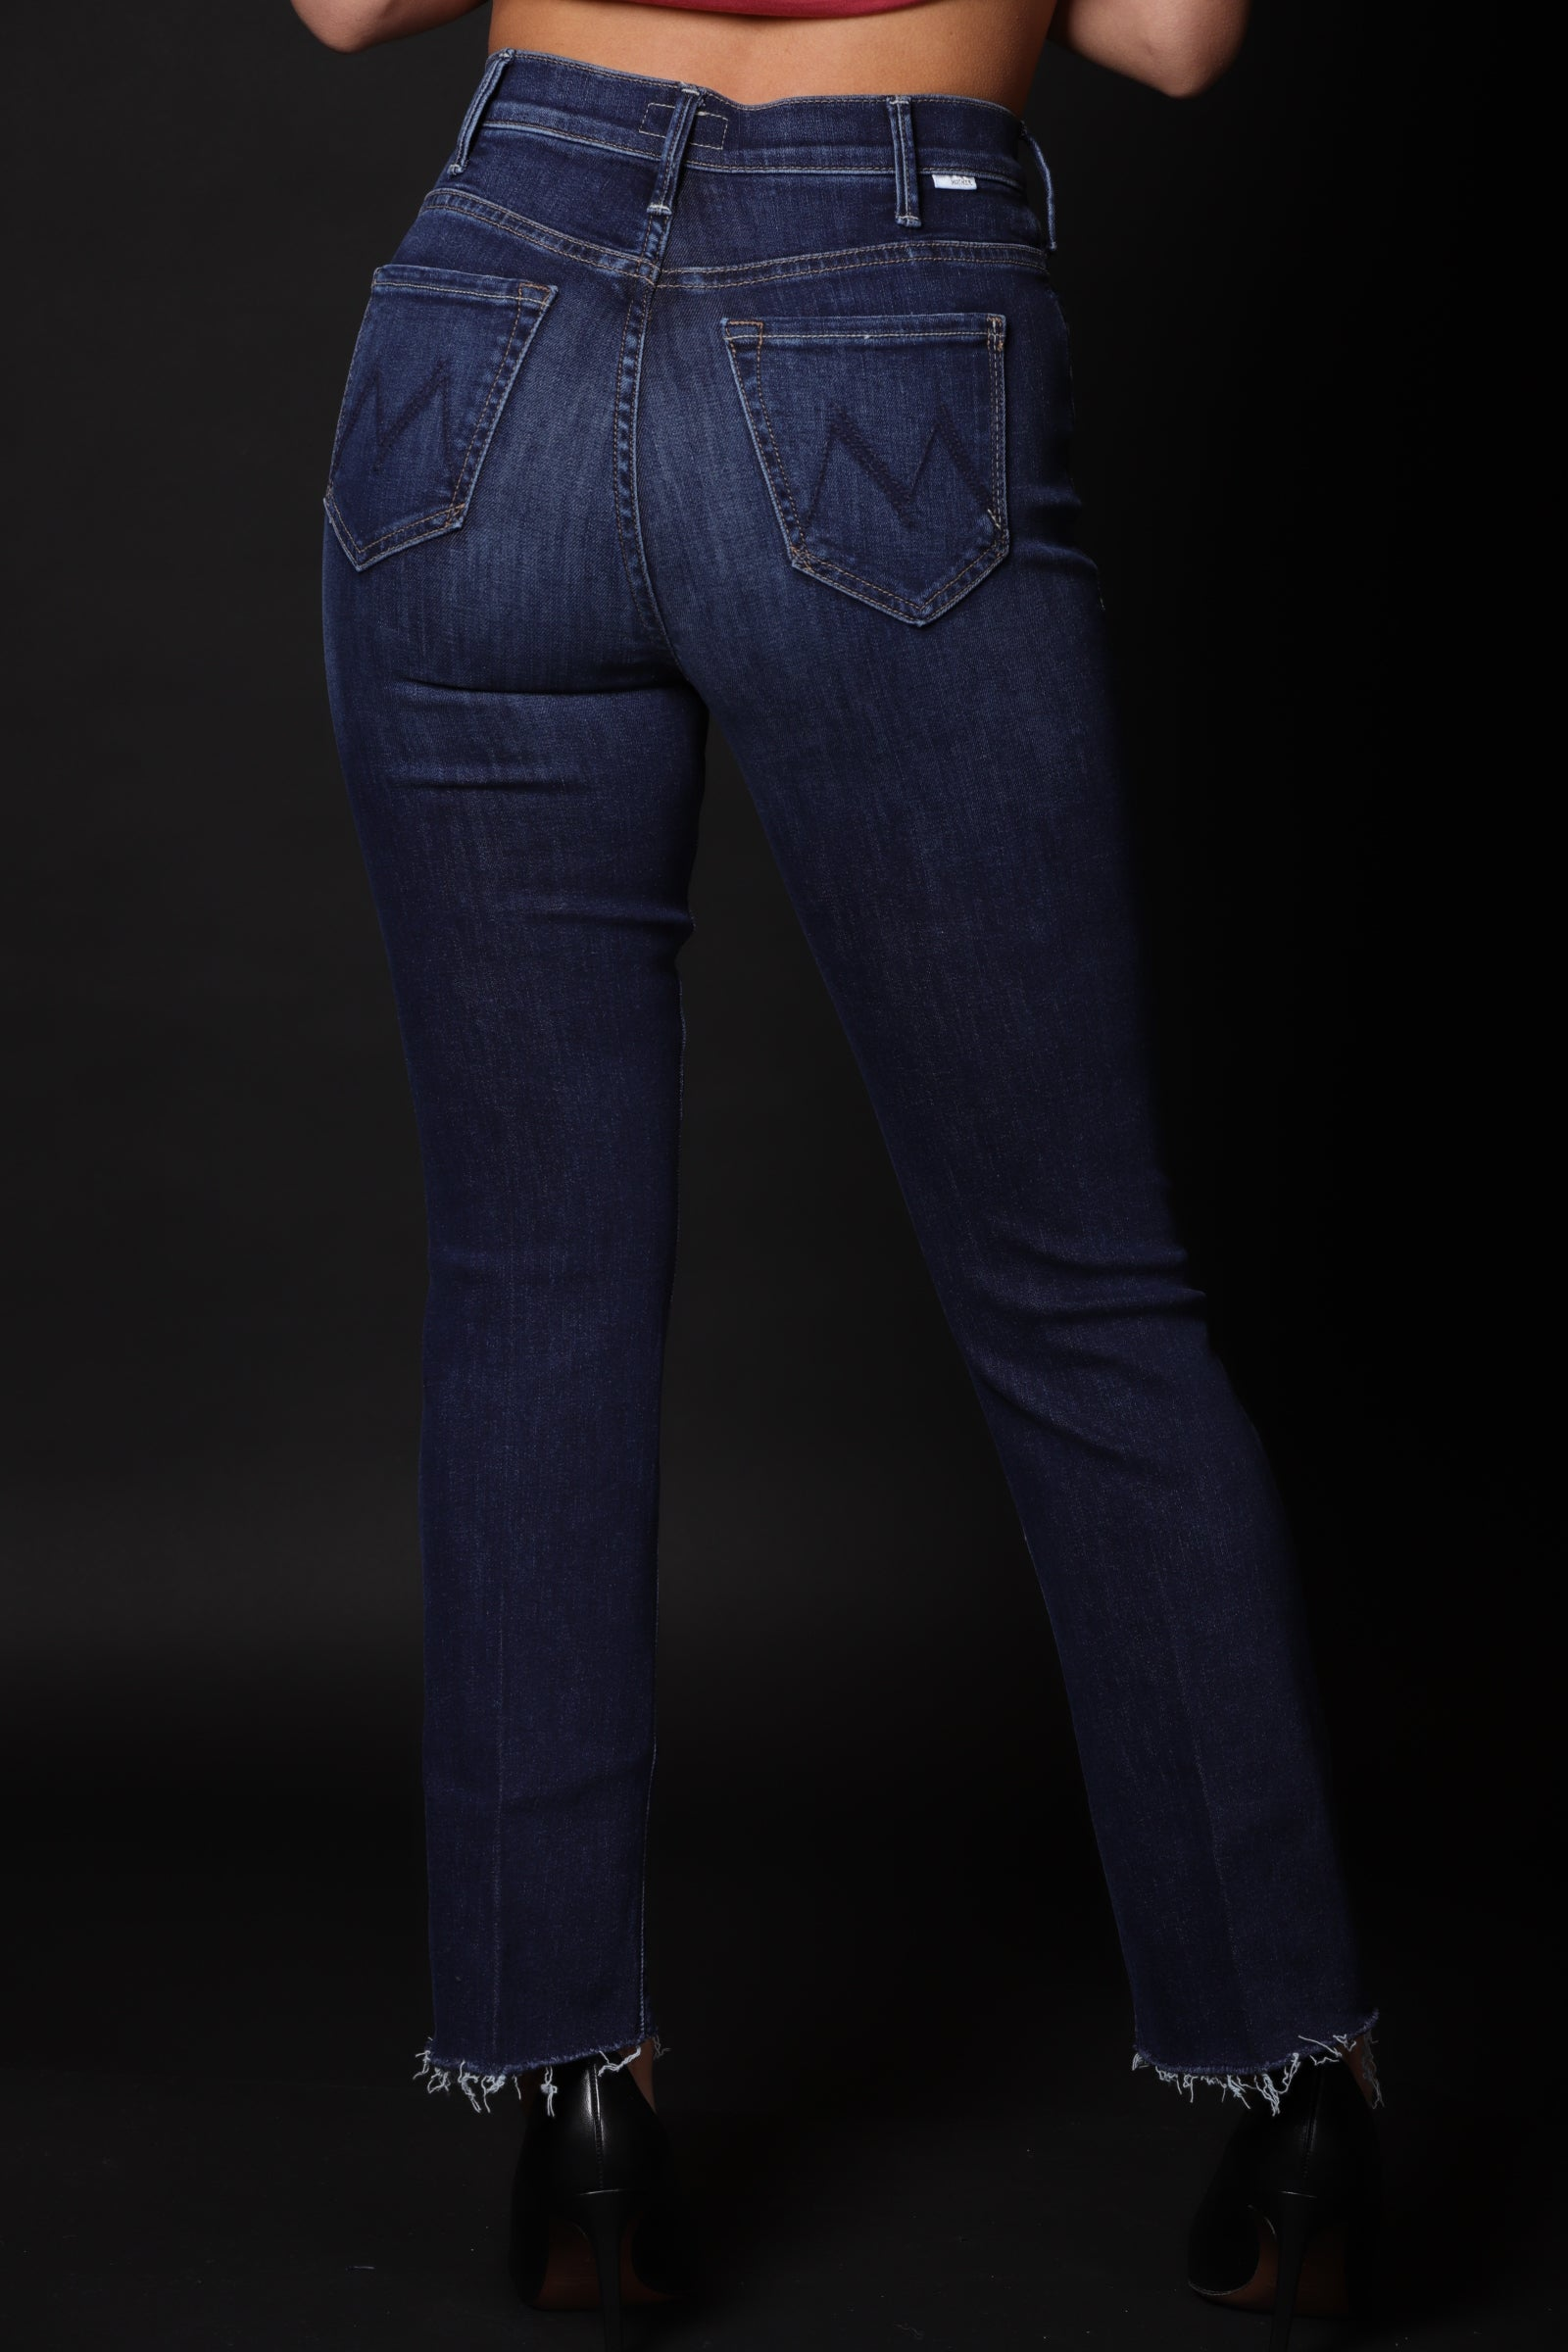 Mather Jeans Donna Denim  A Zampetta